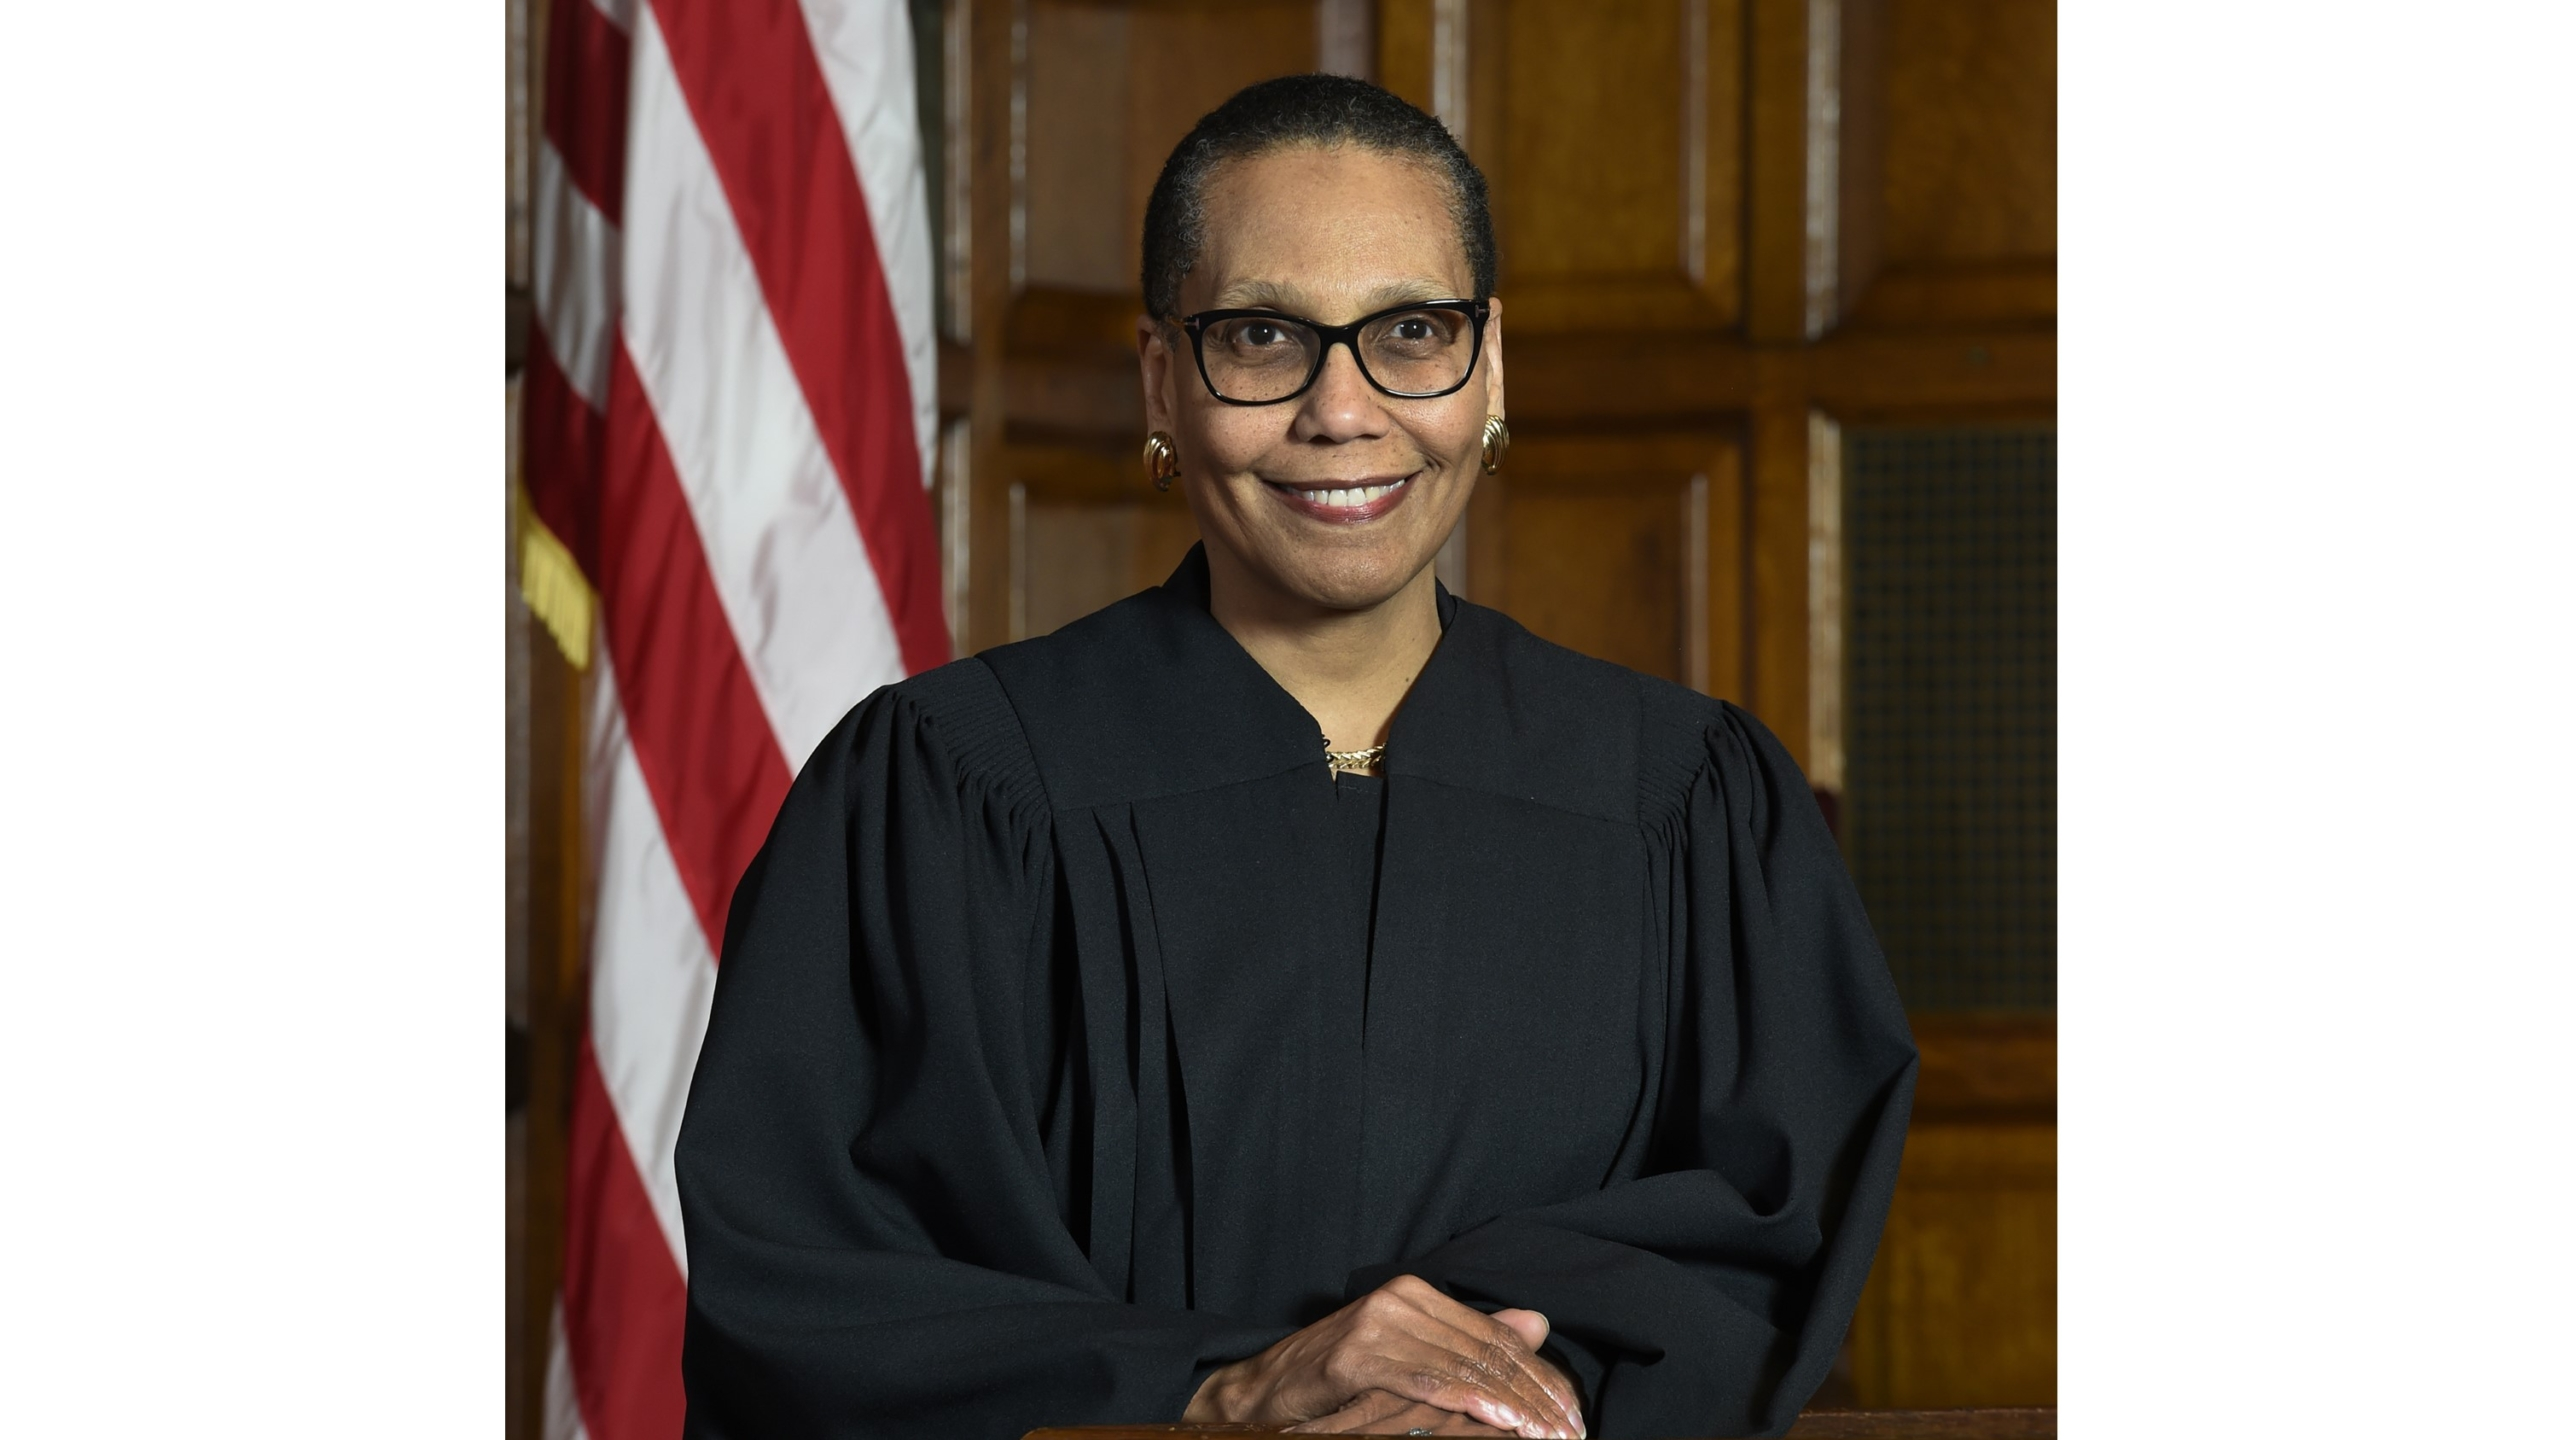 Hon. Sheila Abdus-Salaam: First African American Woman Appointed to the New York State High Court